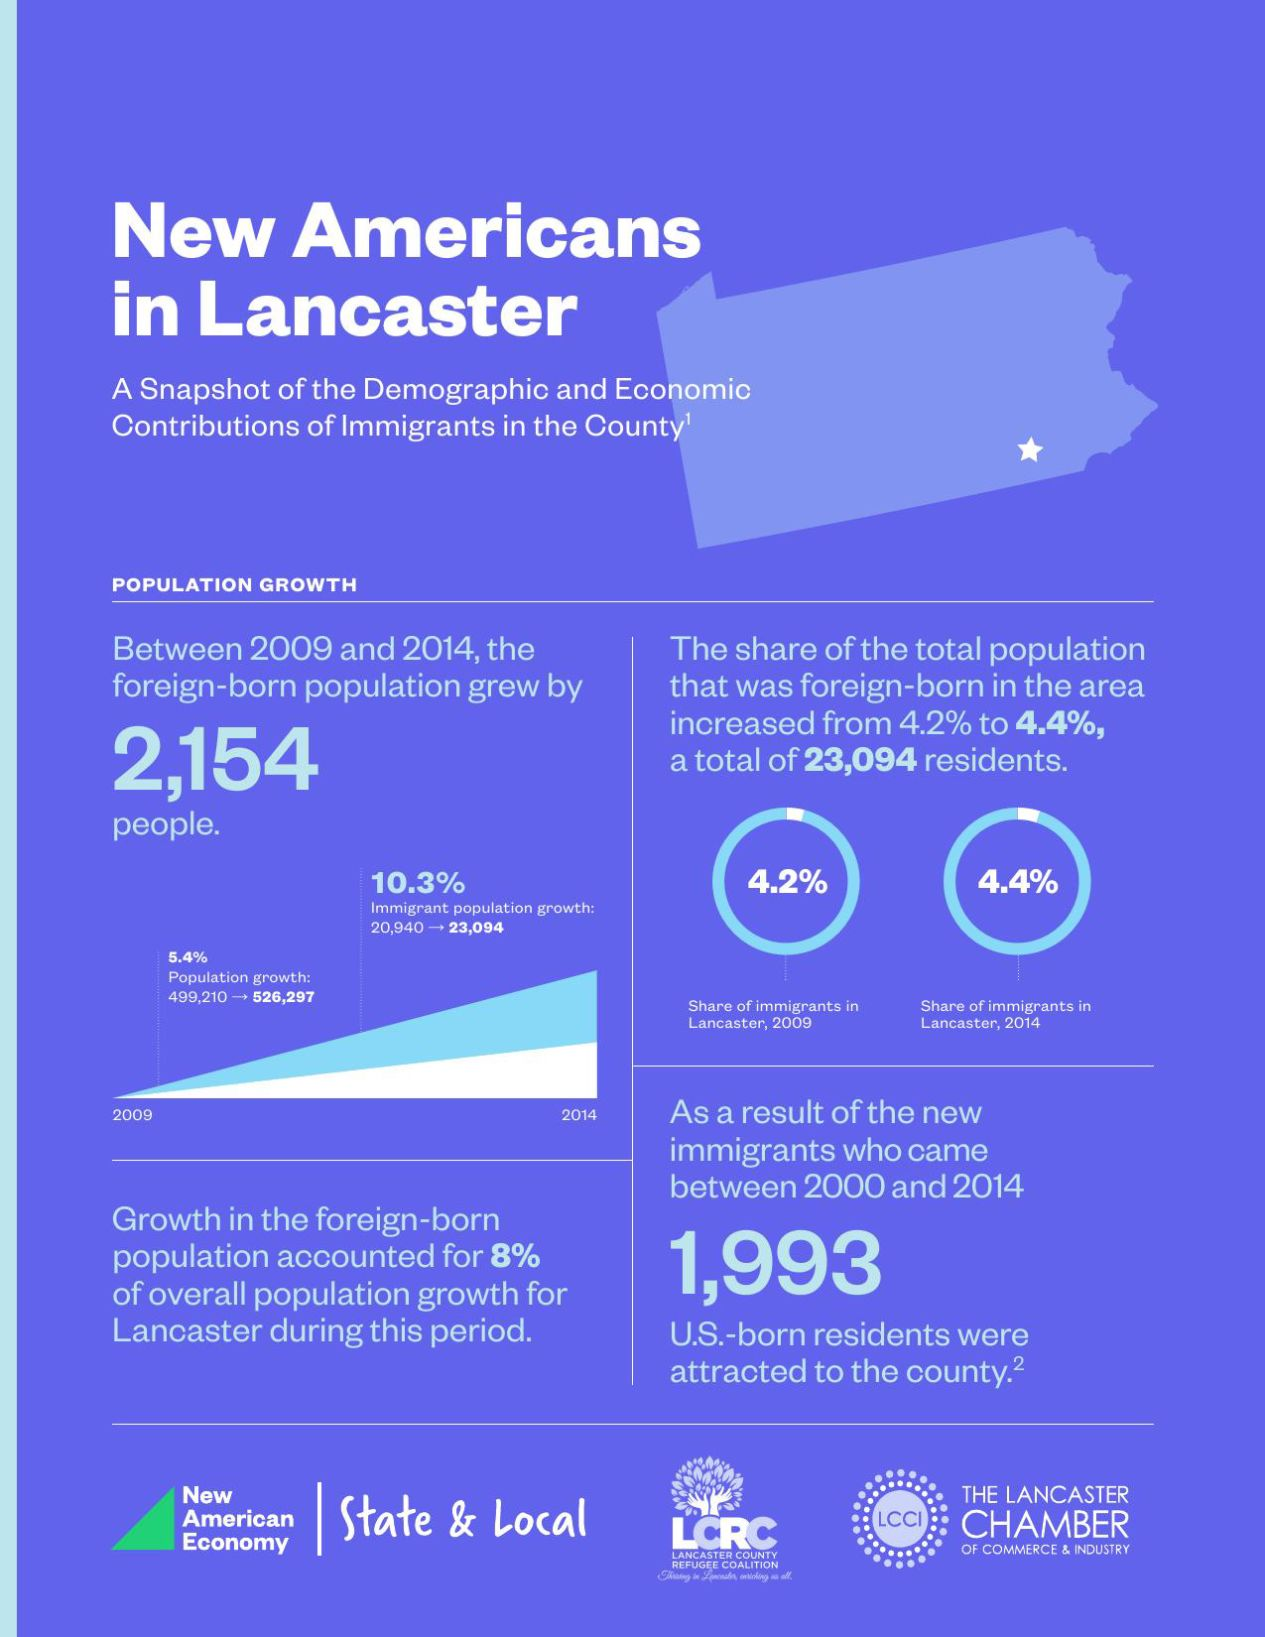 New Americans in Lancaster